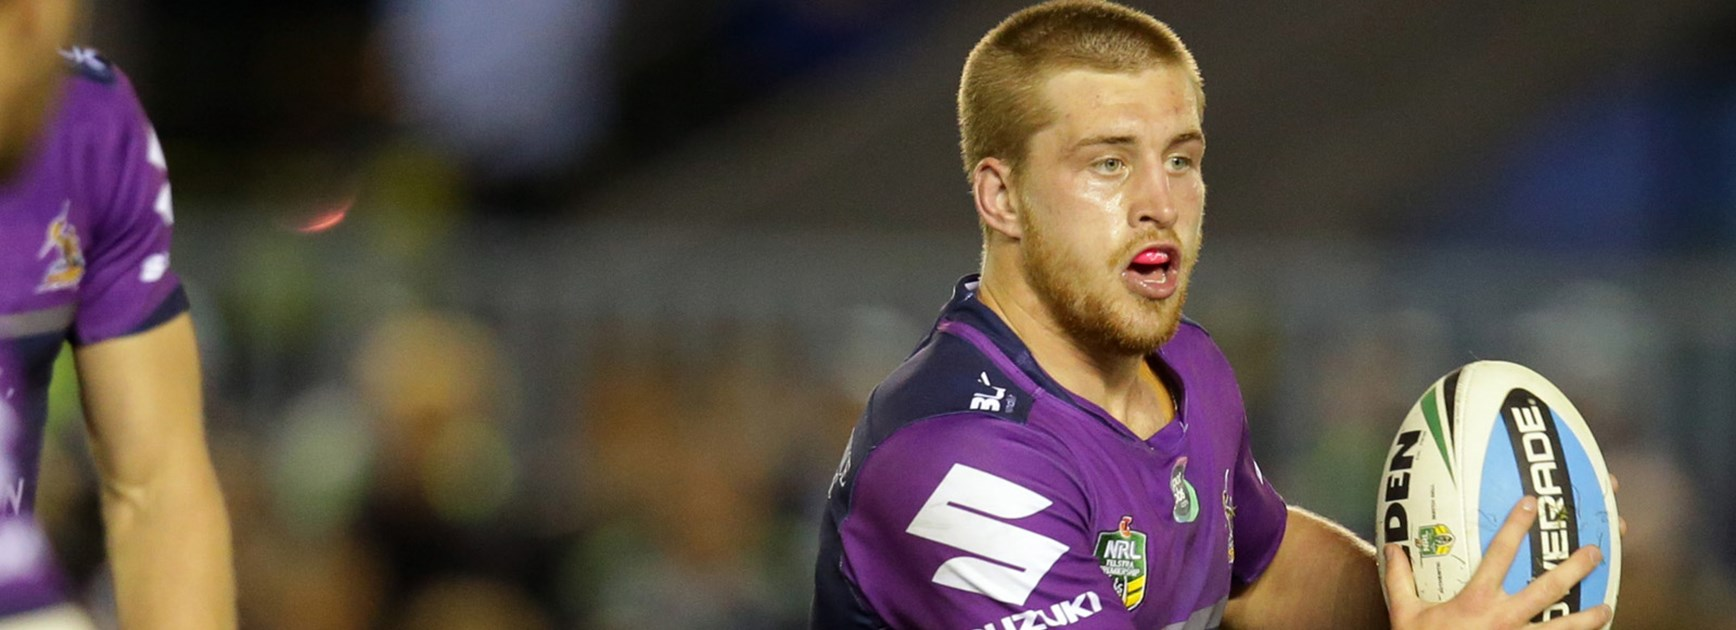 <b>6. Cameron Munster</b> - Filling in at fullback for injured Storm great Billy Slater, Munster averaged more than 177 metres from his 19 games and had greats of the game singing his praises from the commentary box.